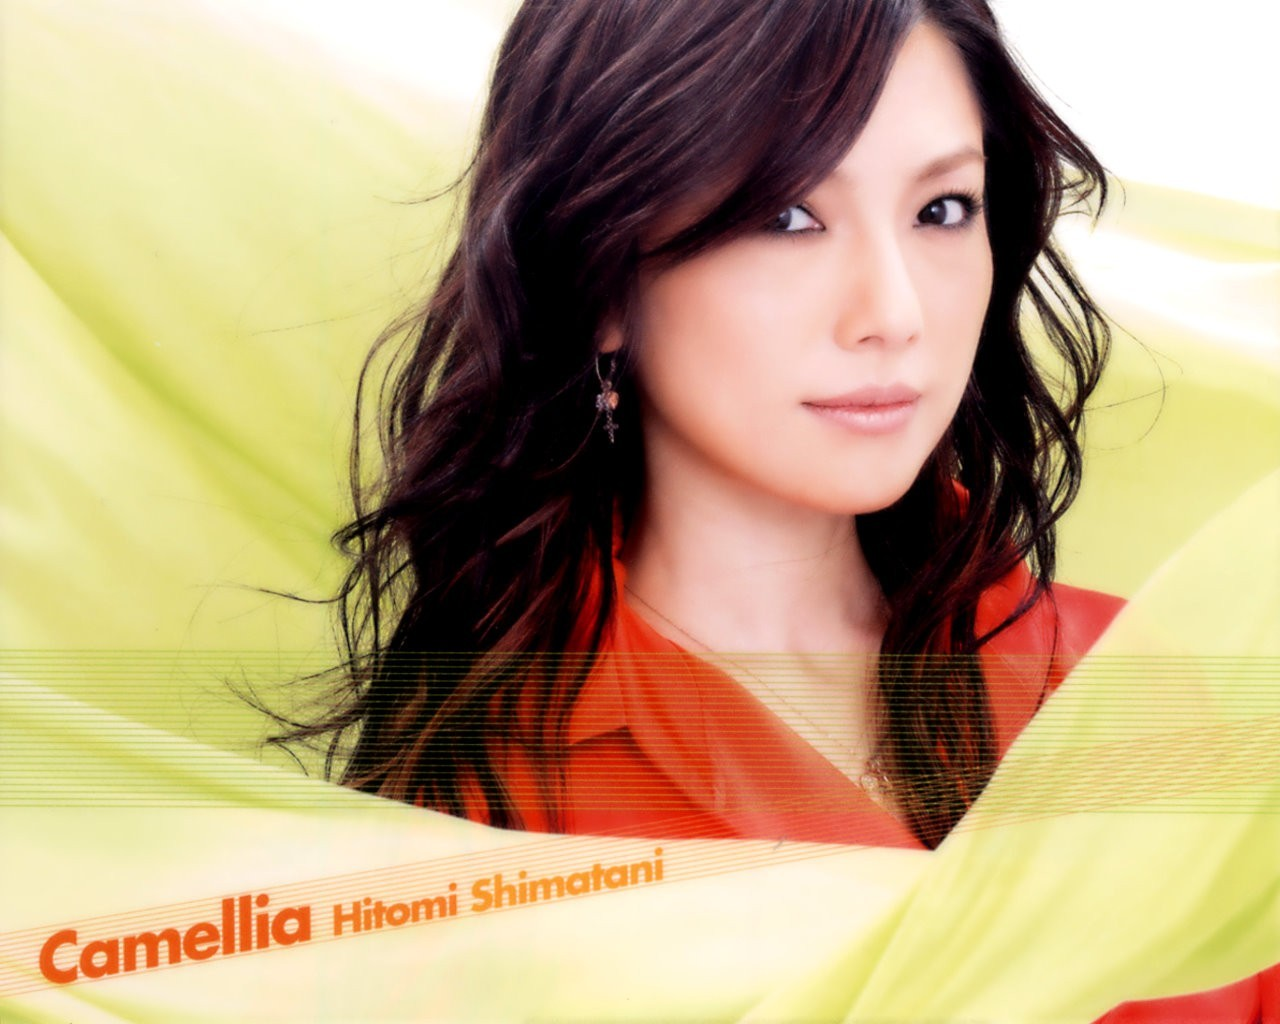 asians hitomi shimatani brunettes HD Wallpaper